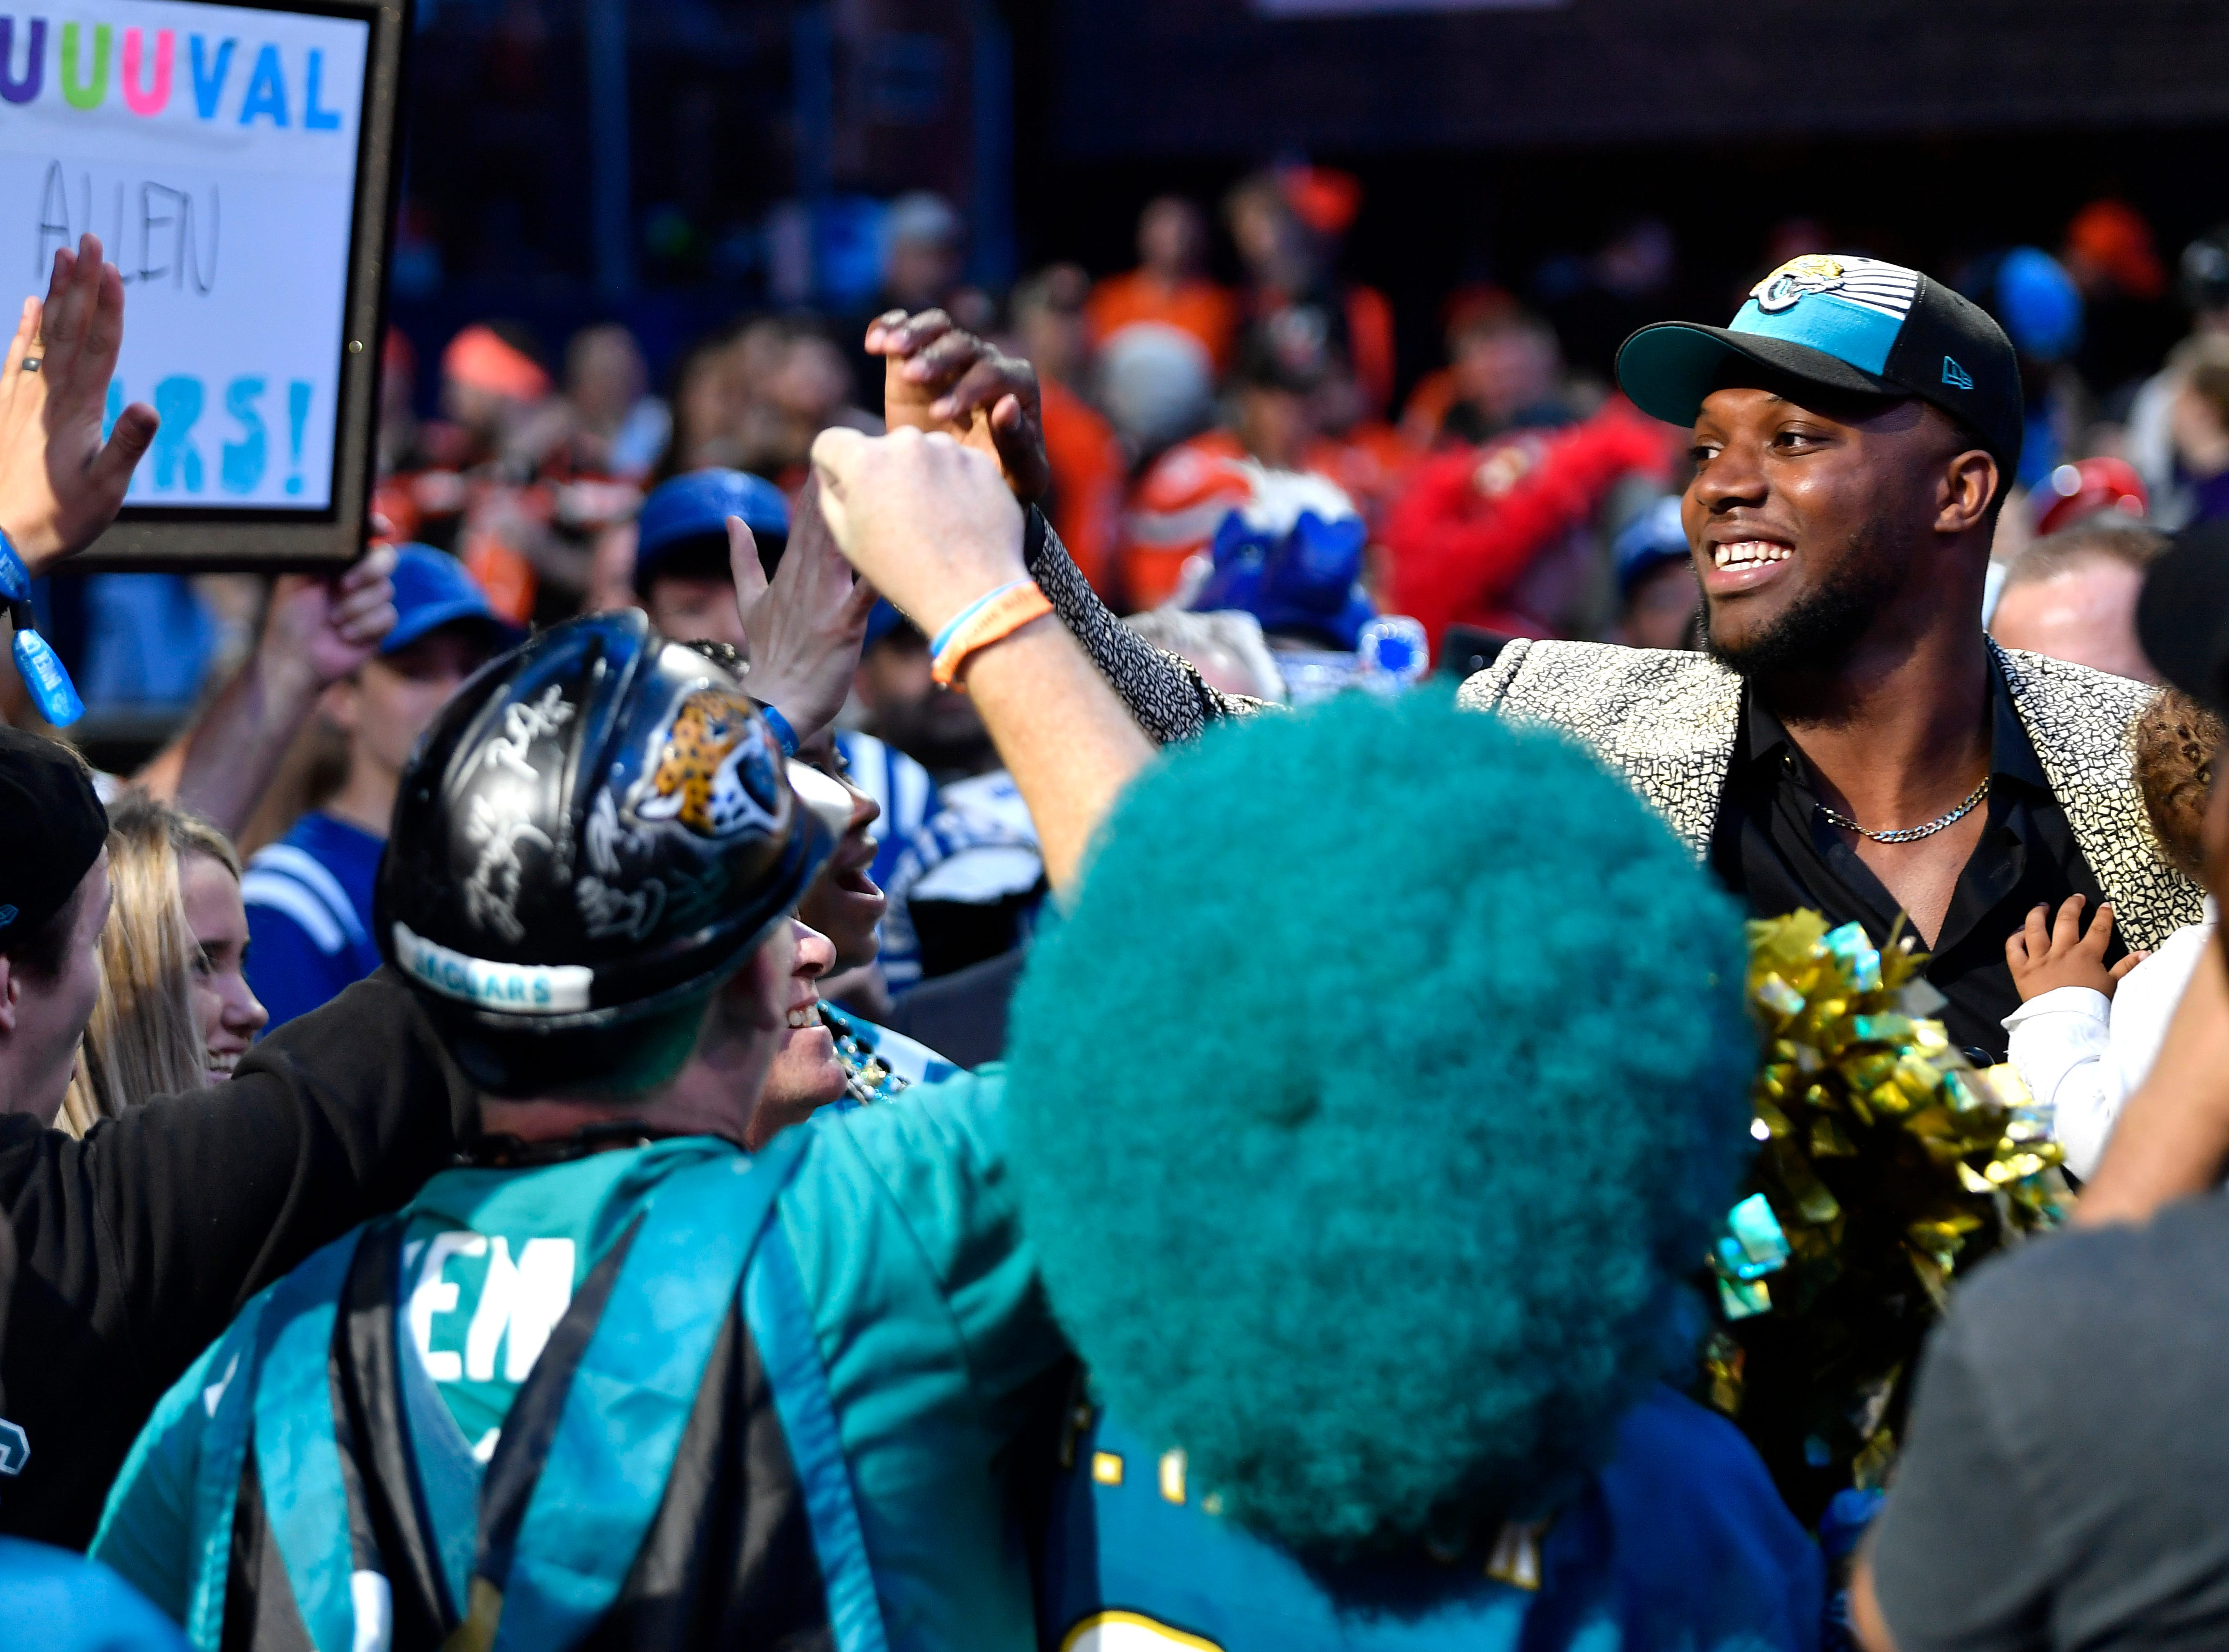 Josh Allen mingles with Jaguars fans after being picked during the first round of the NFL Draft Thursday, April 25, 2019, in Nashville, Tenn.